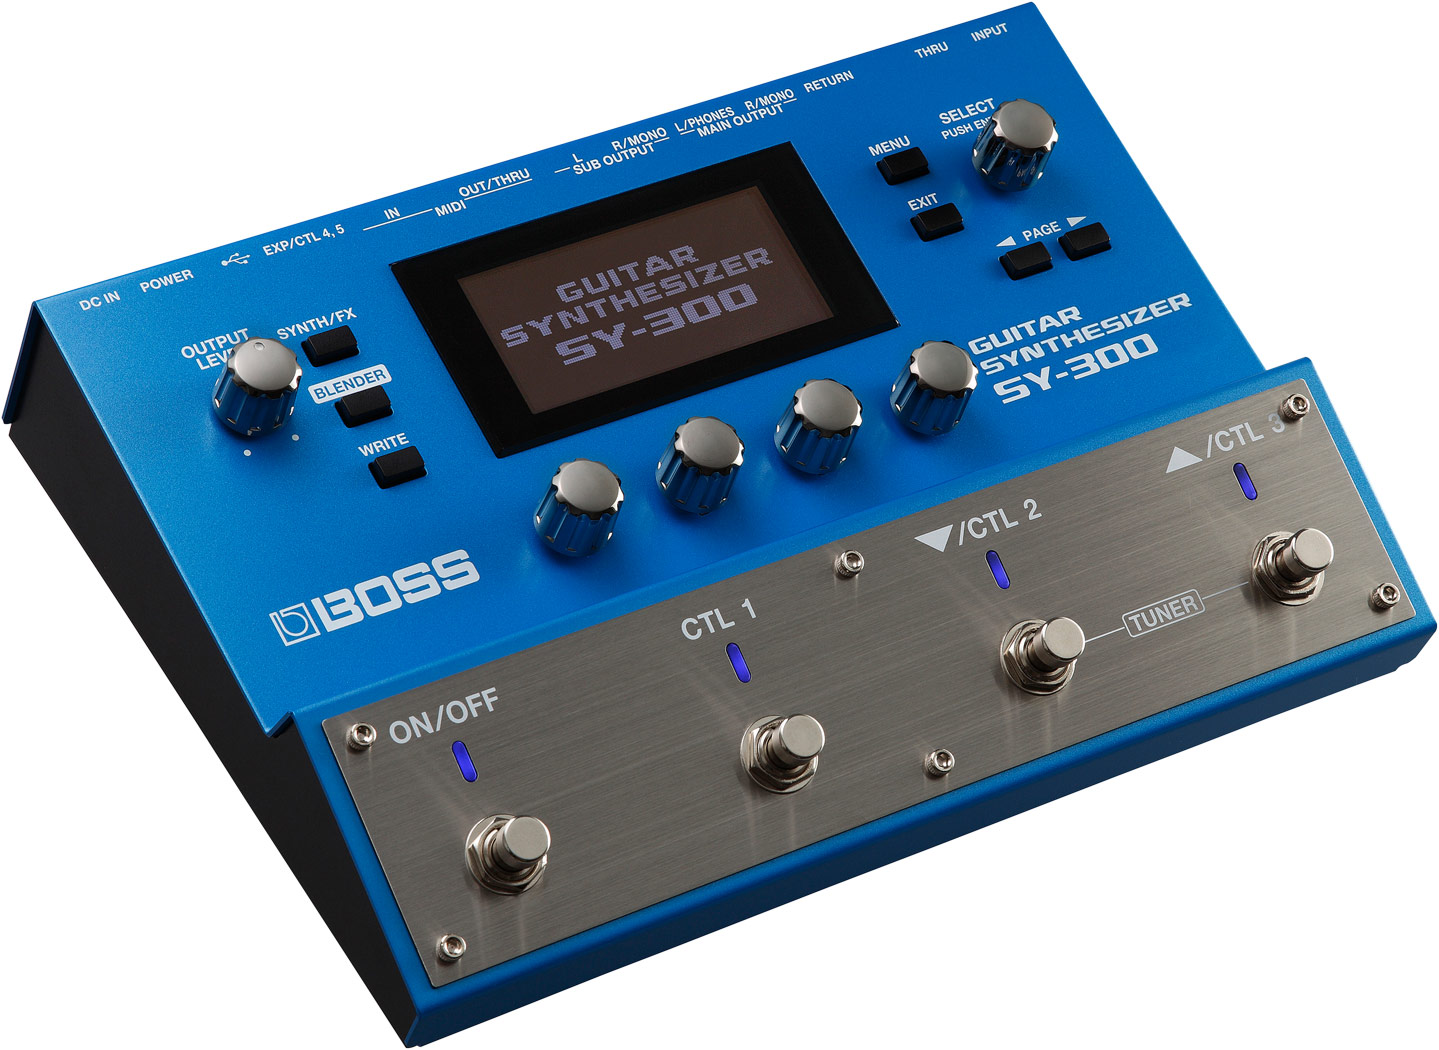 BOSS(Roland)SY-300Guitar Synthesizer【ボス】【ギターシンセ】【シンセサイザー】【入荷しました】【送料無料】